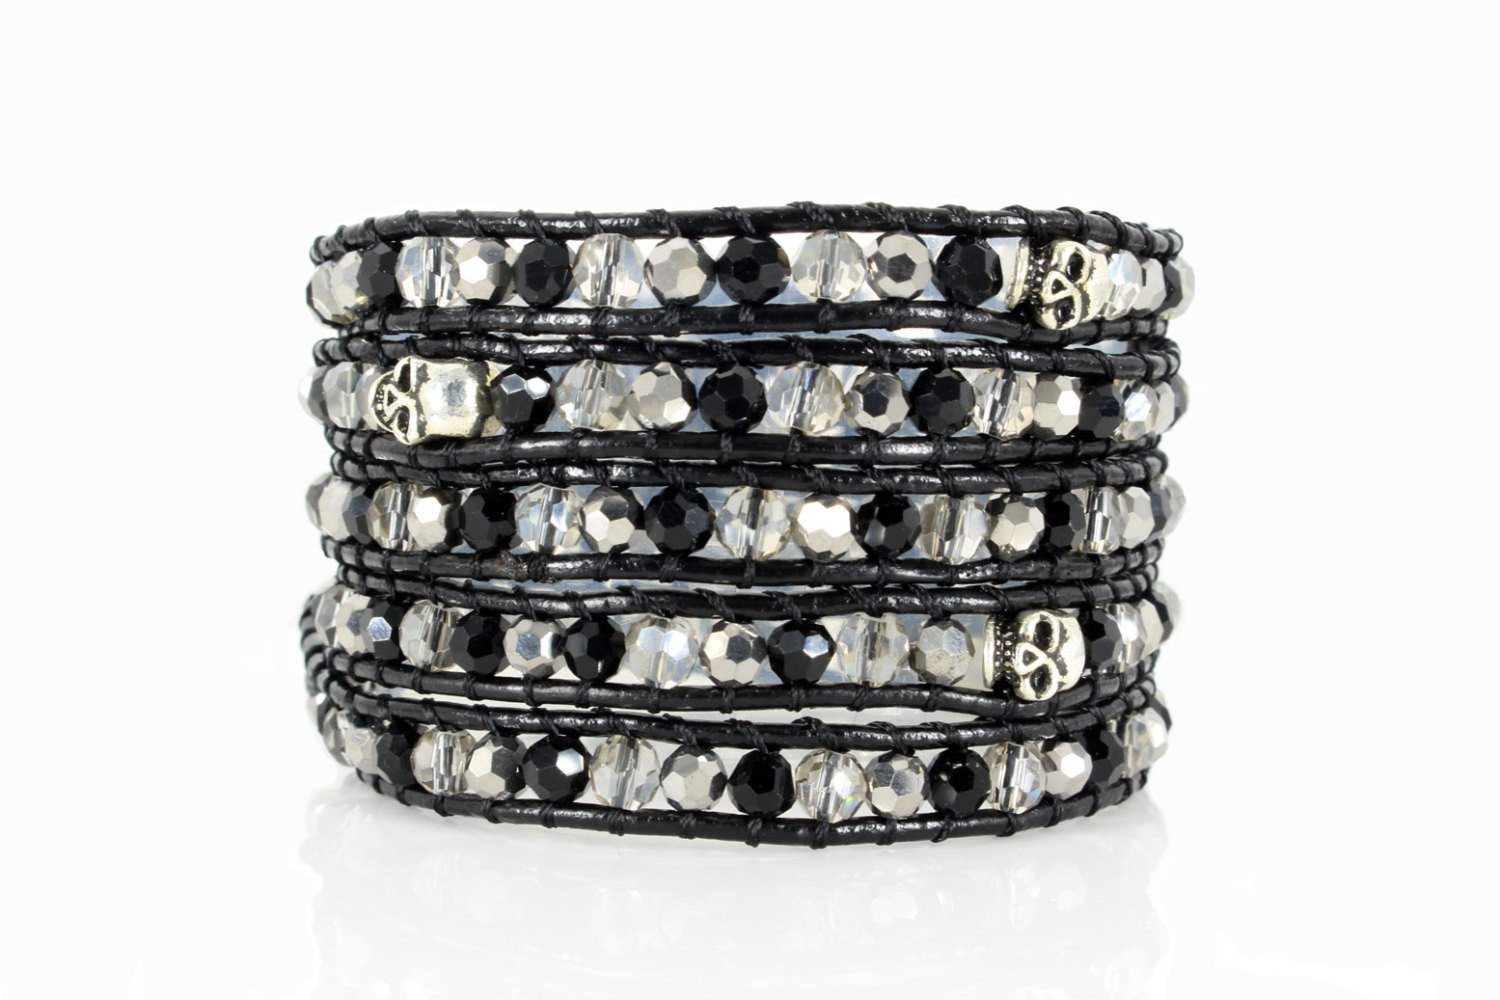 Personalized 5x Five Wrap Leather Bracelet, Precious Stones & Swarovski Crystals - product_type] - Beautiz